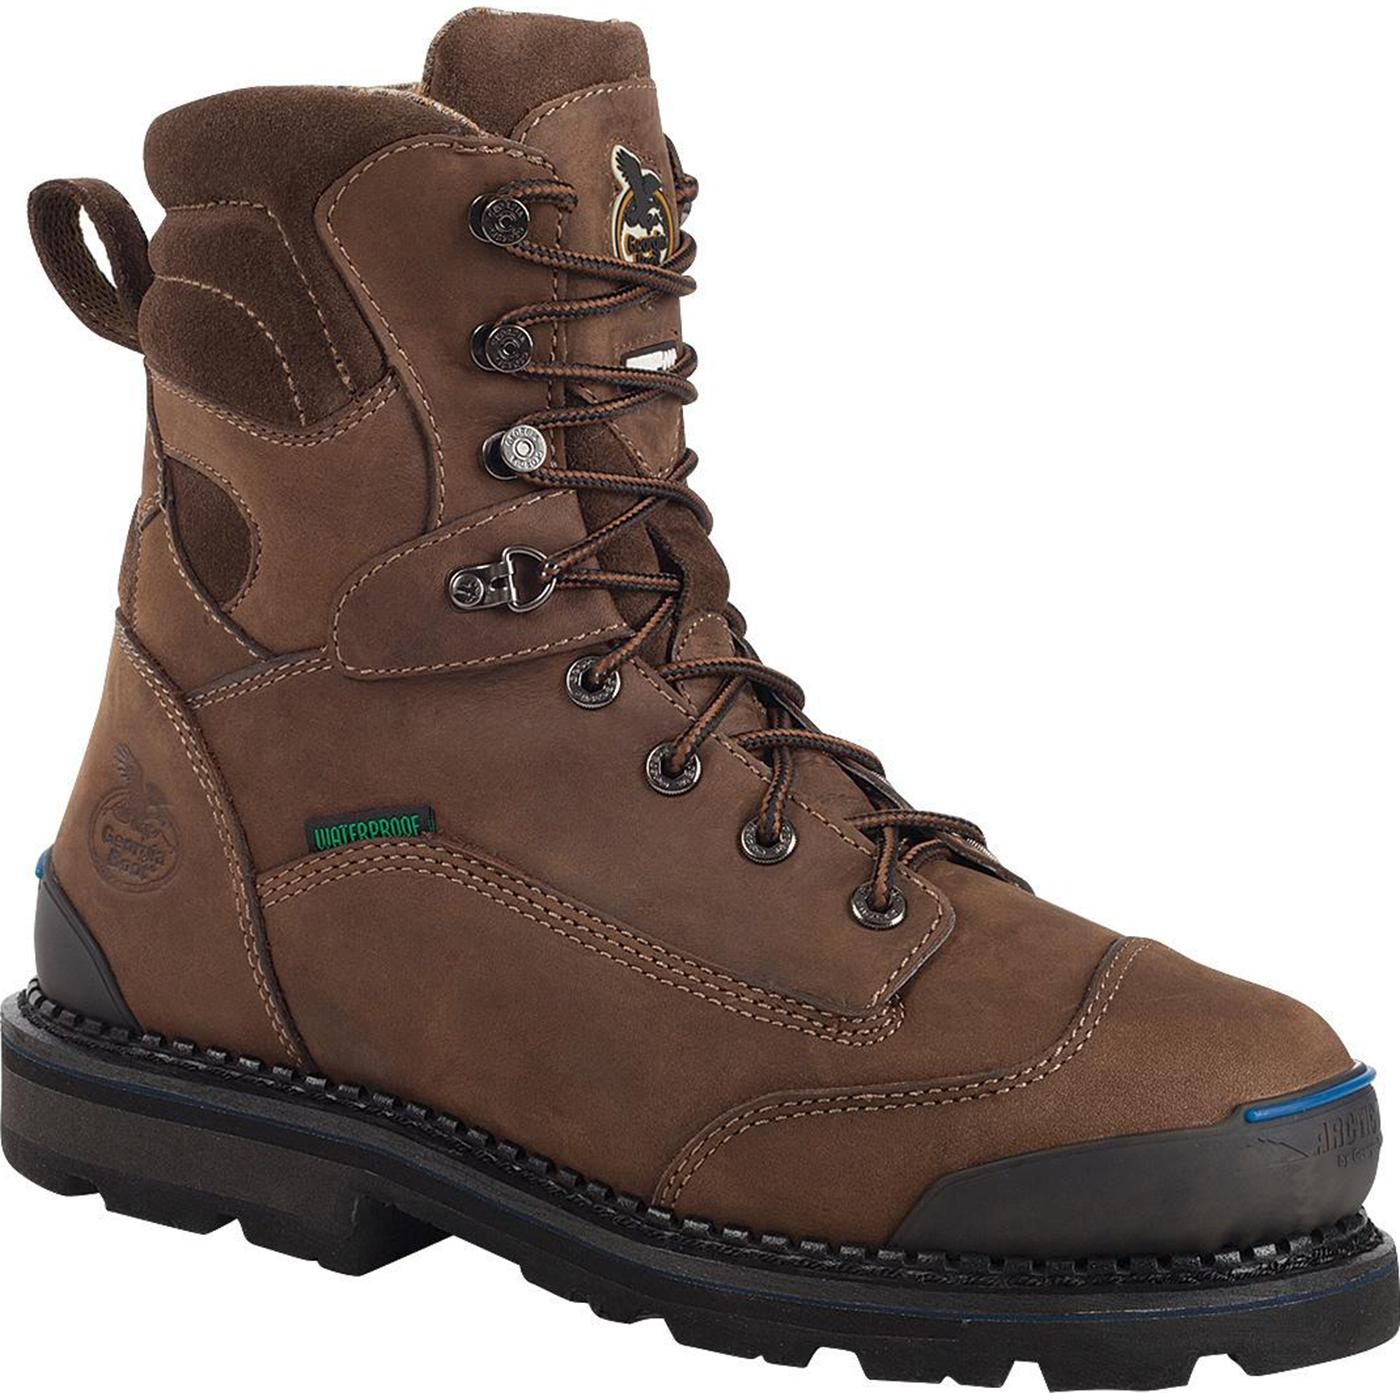 Georgia Arctic Grip Waterproof Insulated Work Boot G012